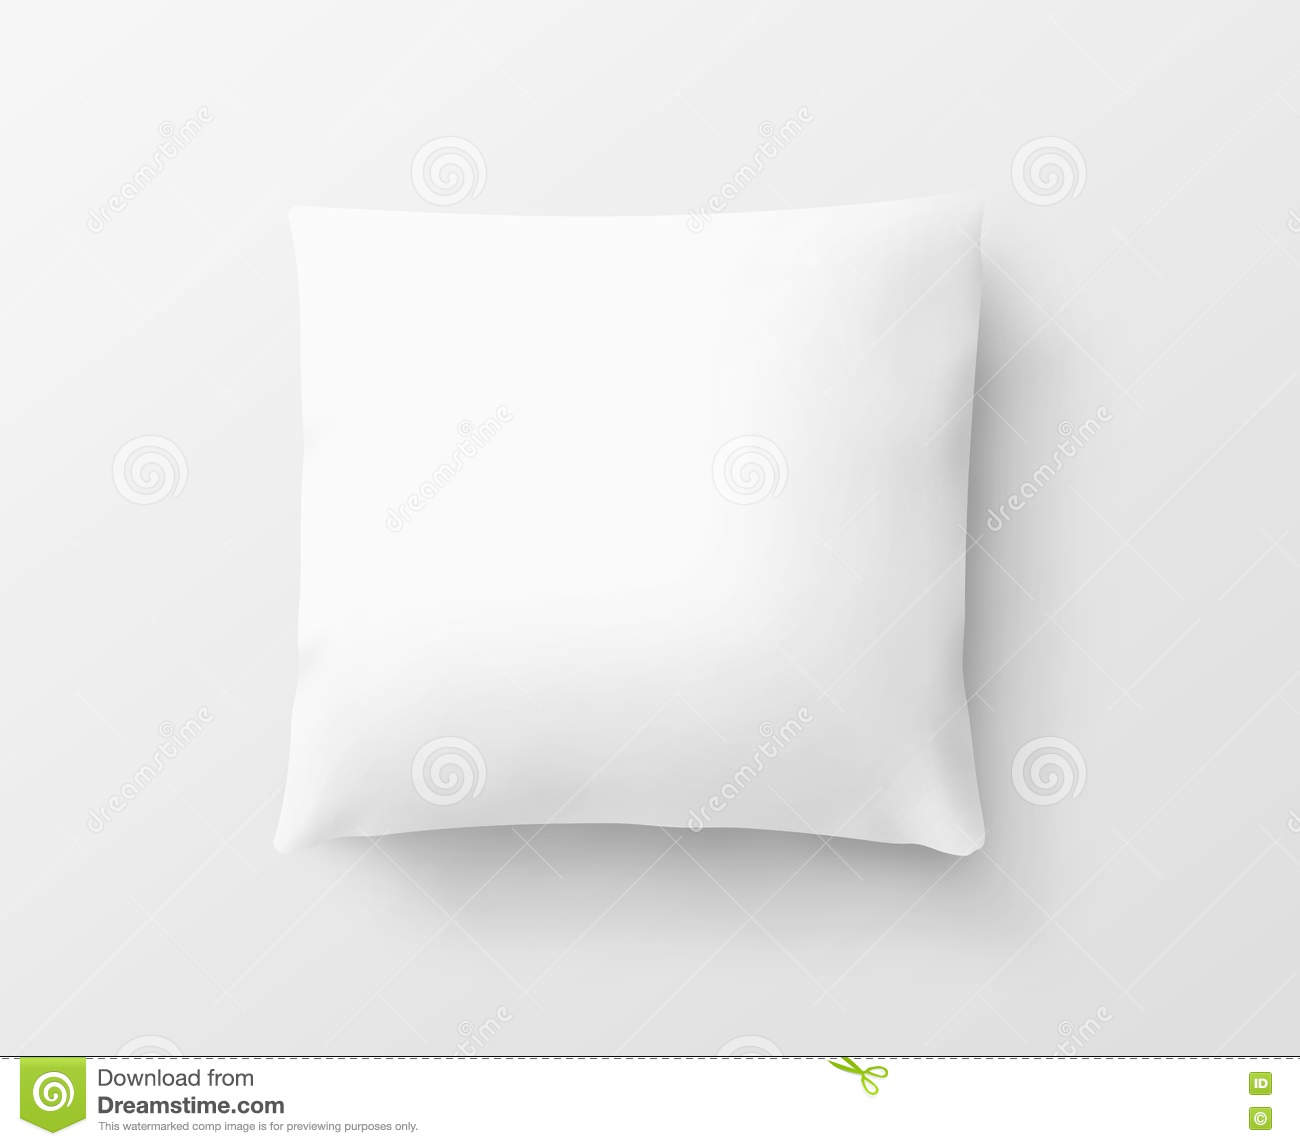 Blank white pillow case design mockup, , clipping path, 3d illustration